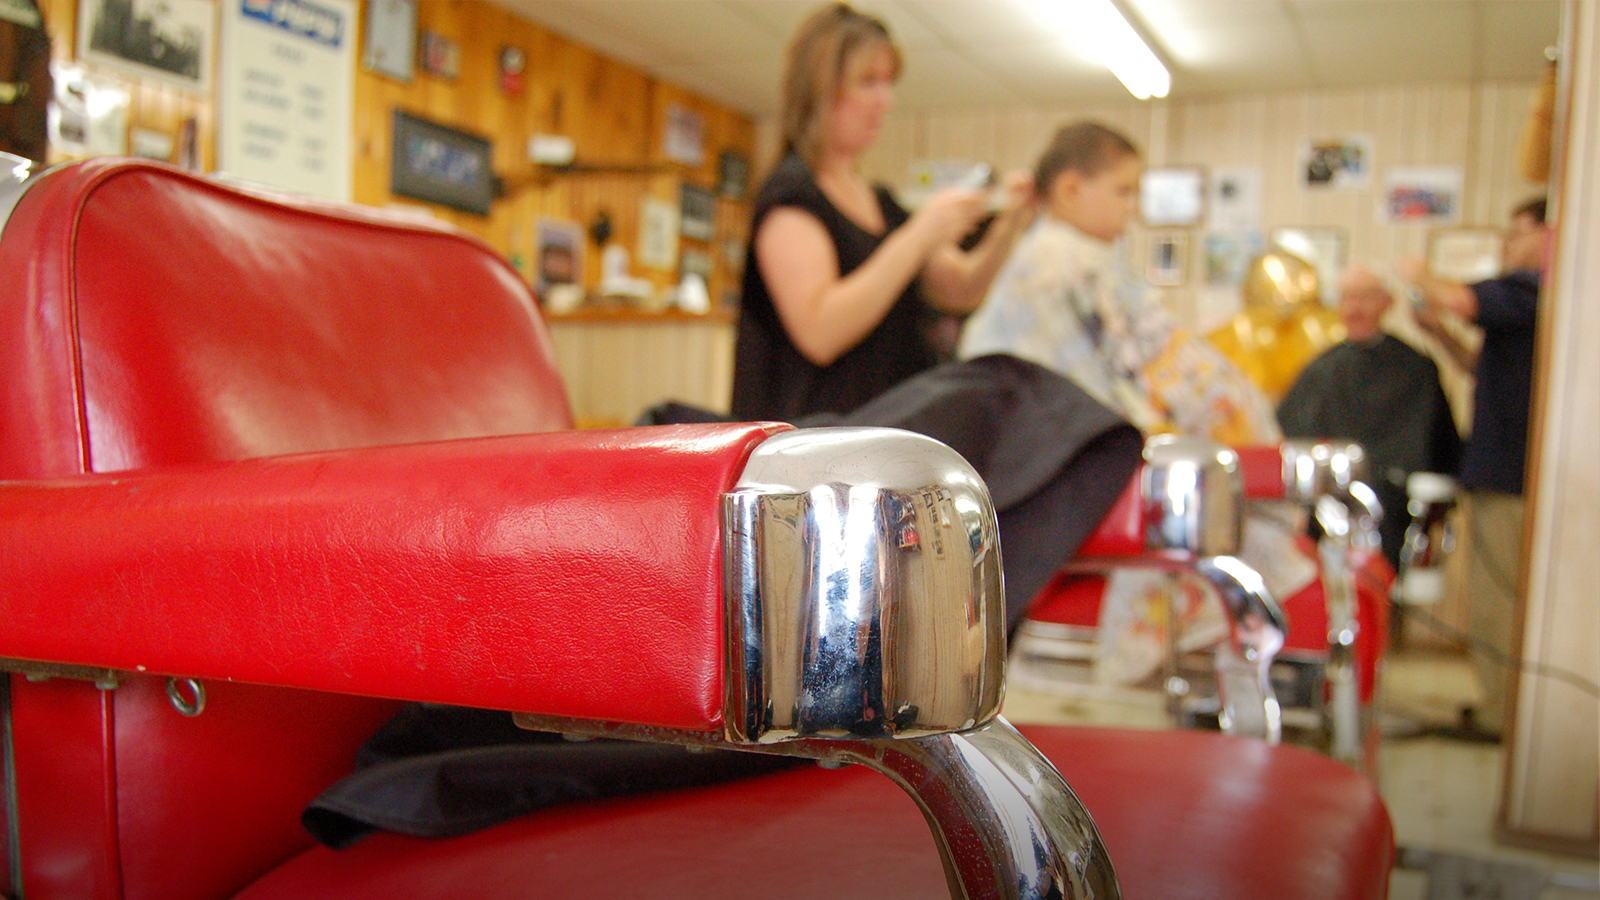 For more than 50 years,  Cook's Barber Shop  has provided old-fashioned service that keeps customers returning.